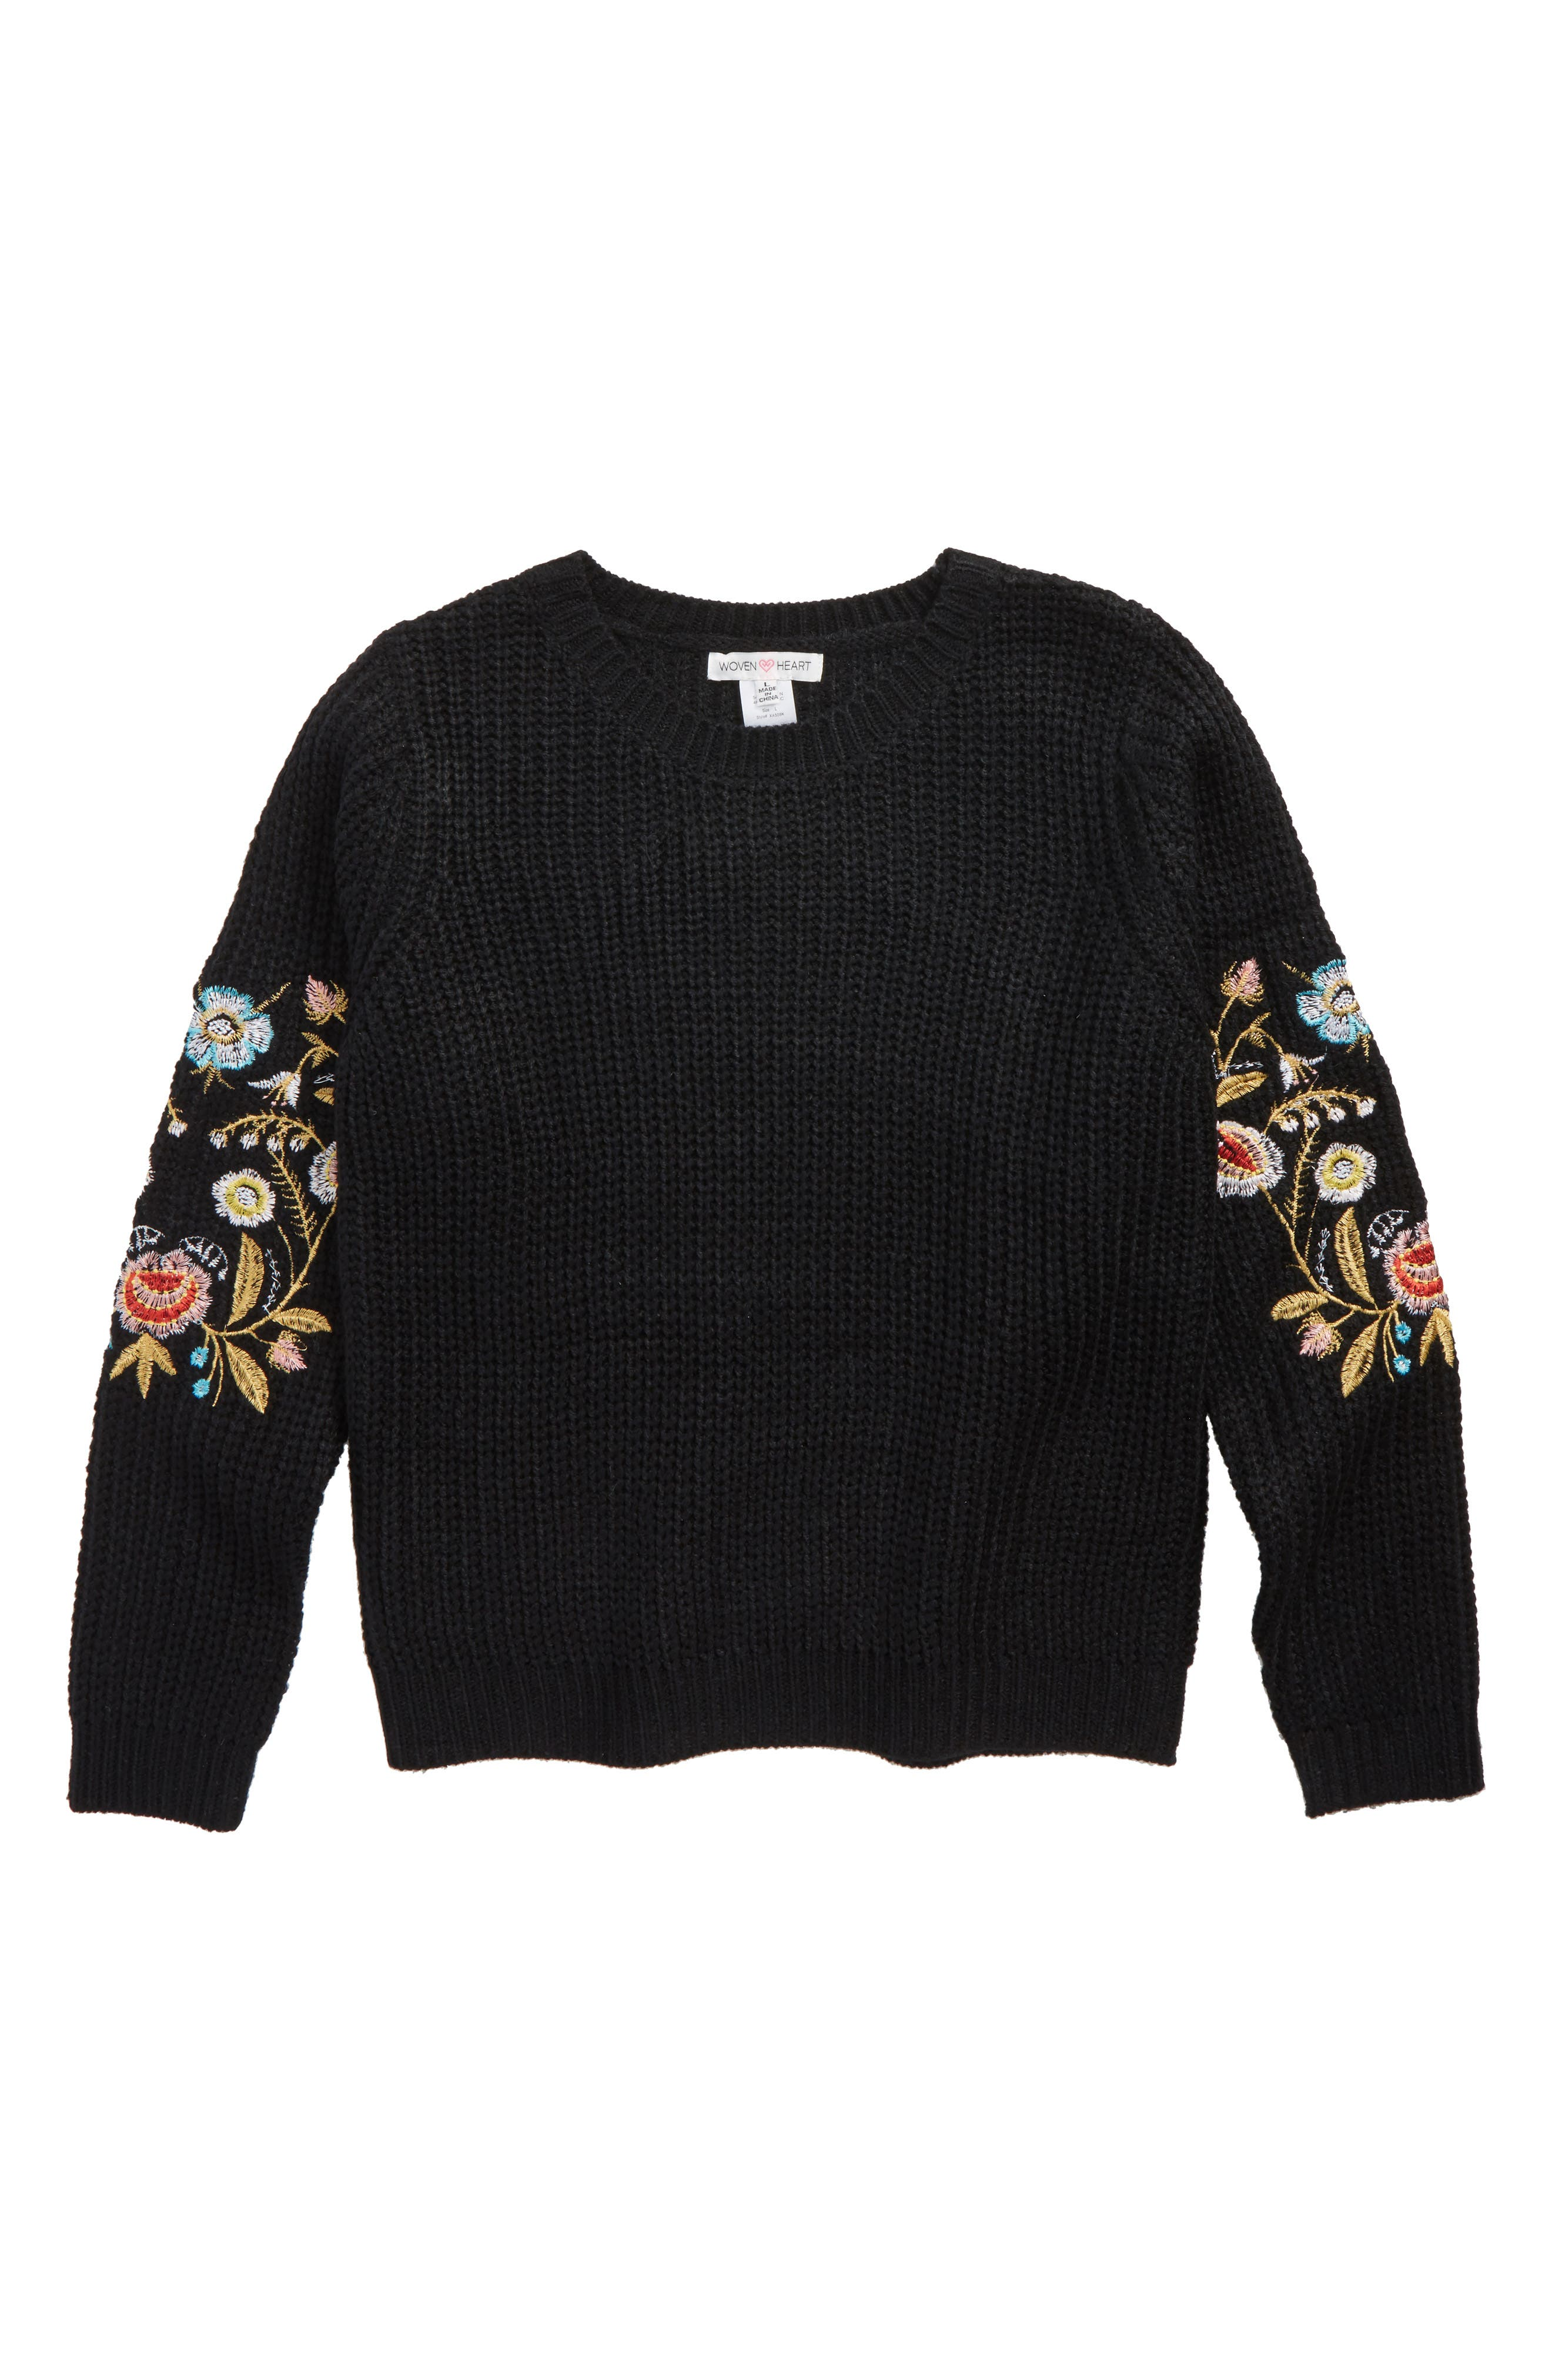 Embroidered Sleeve Sweater,                         Main,                         color, 001